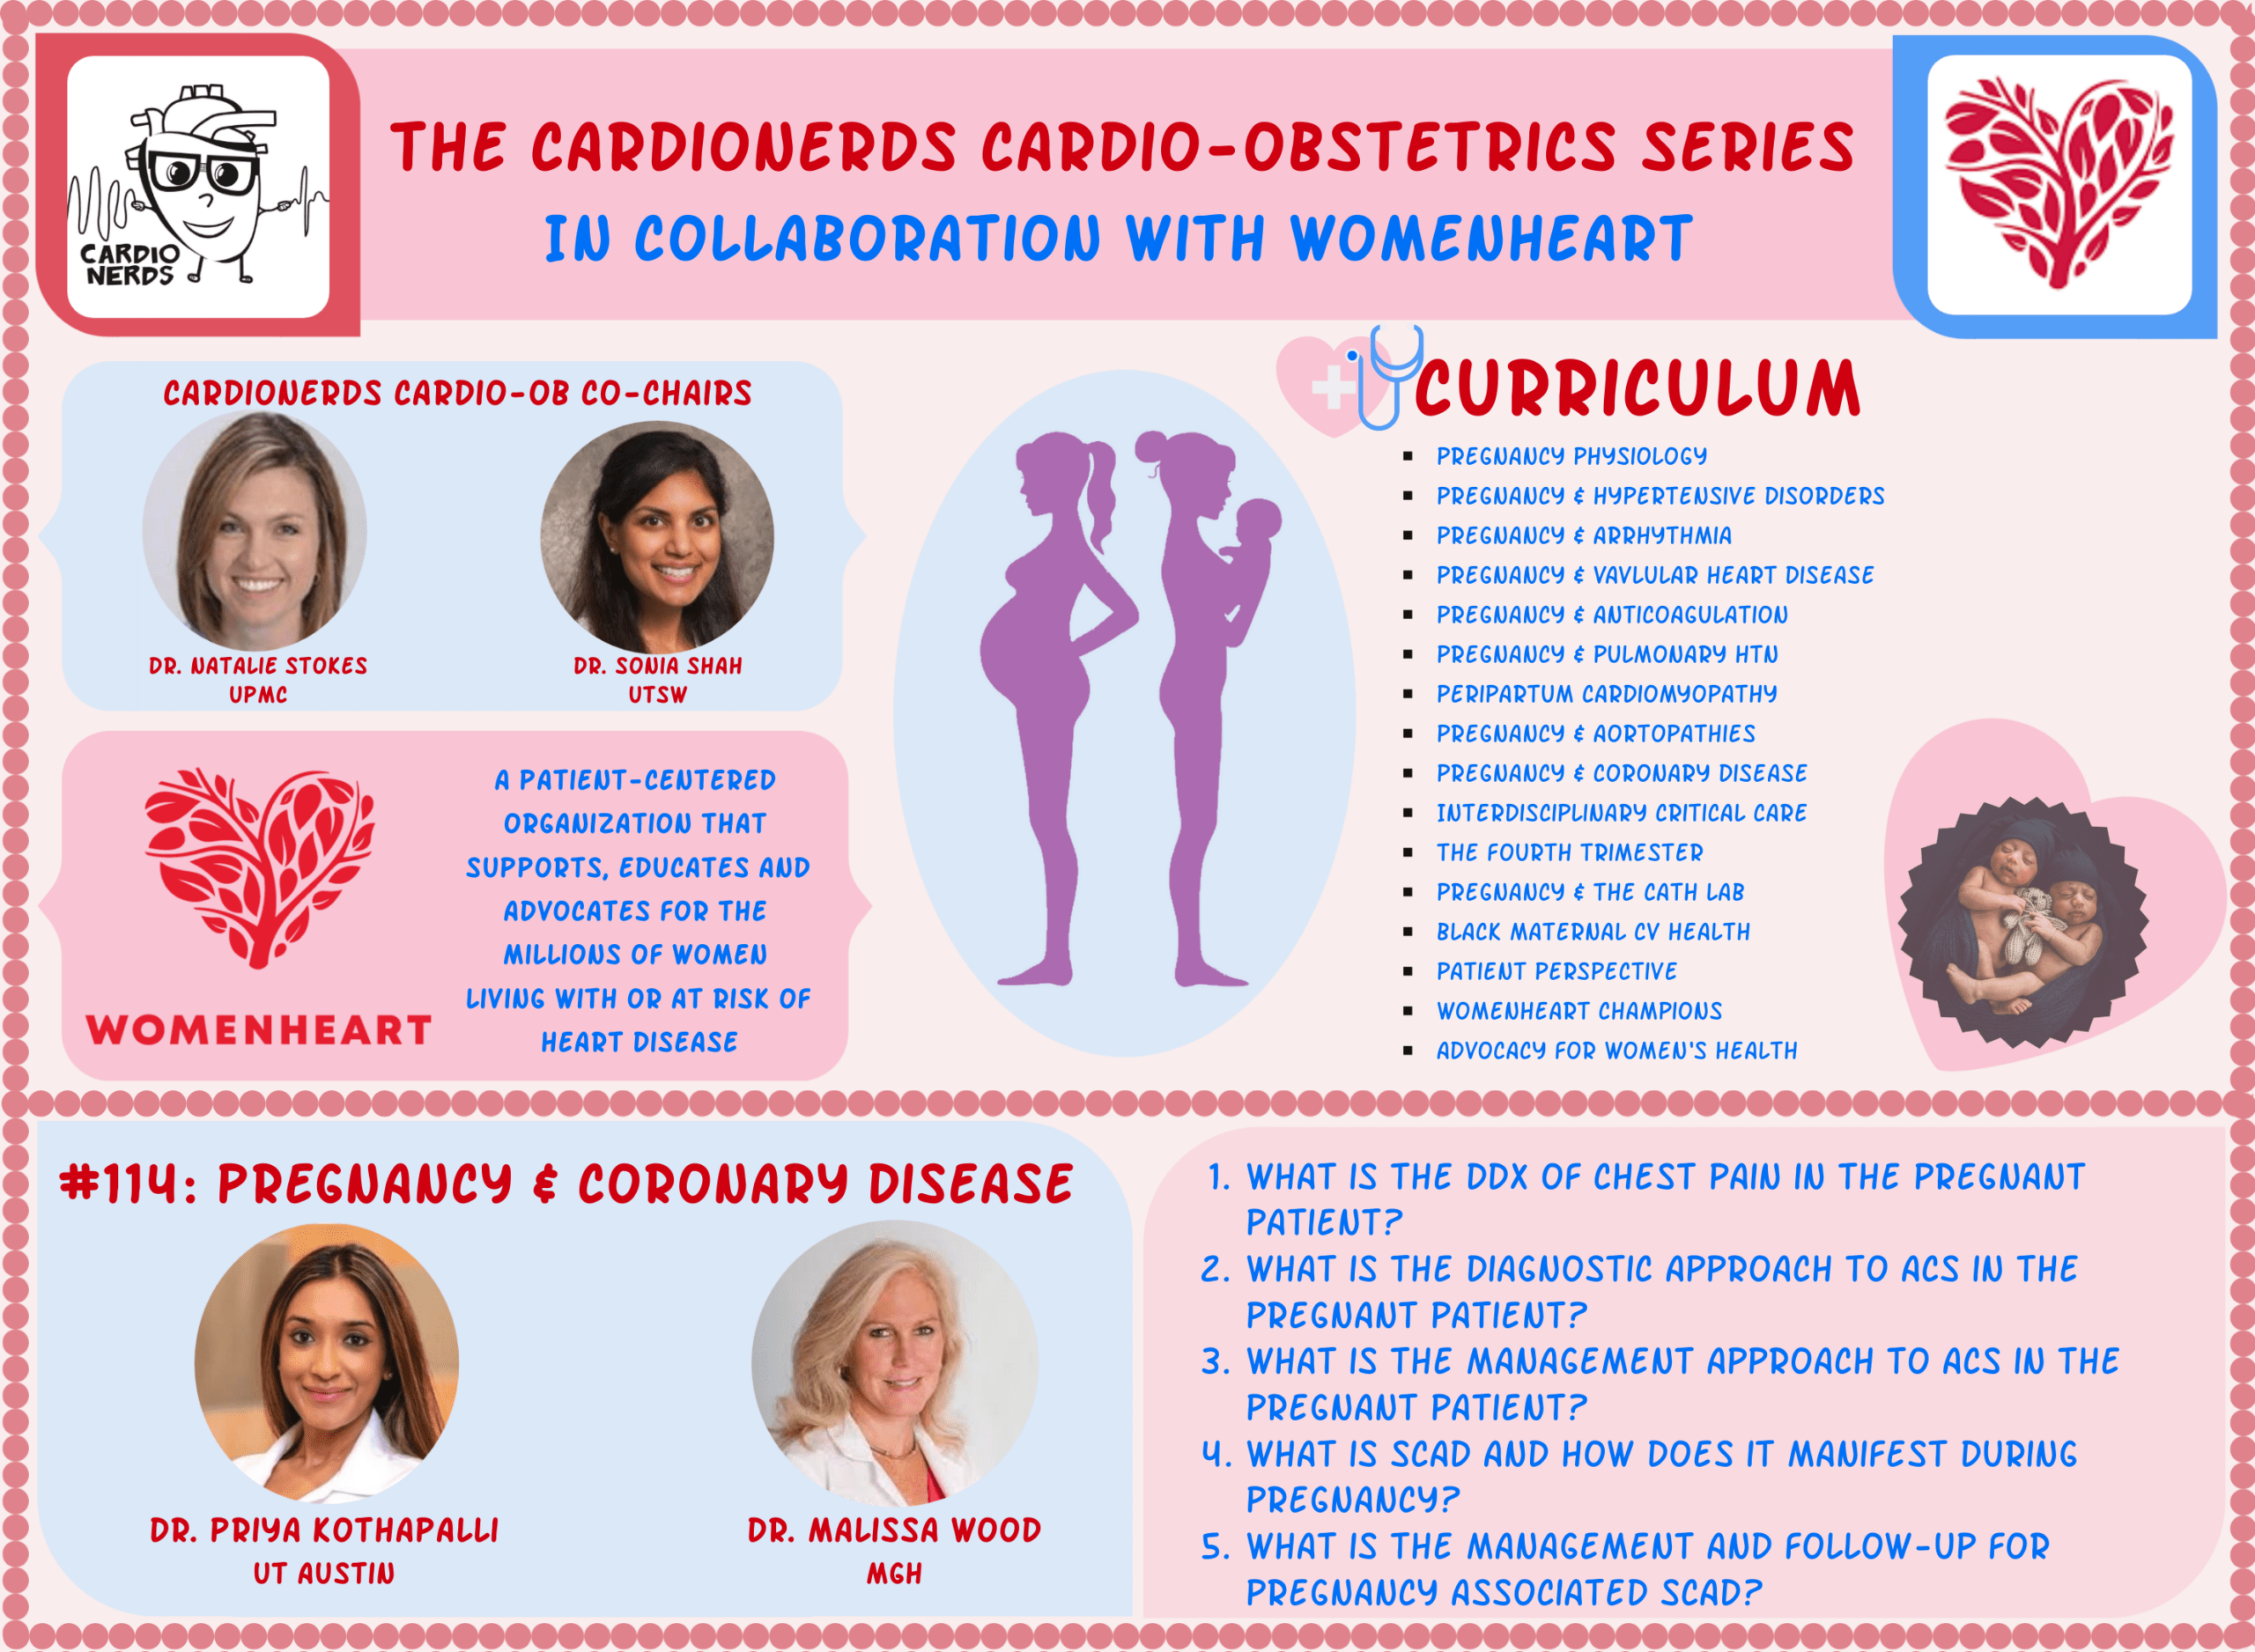 114. Cardio-Obstetrics: Pregnancy and Coronary Disease with Dr. Malissa Wood